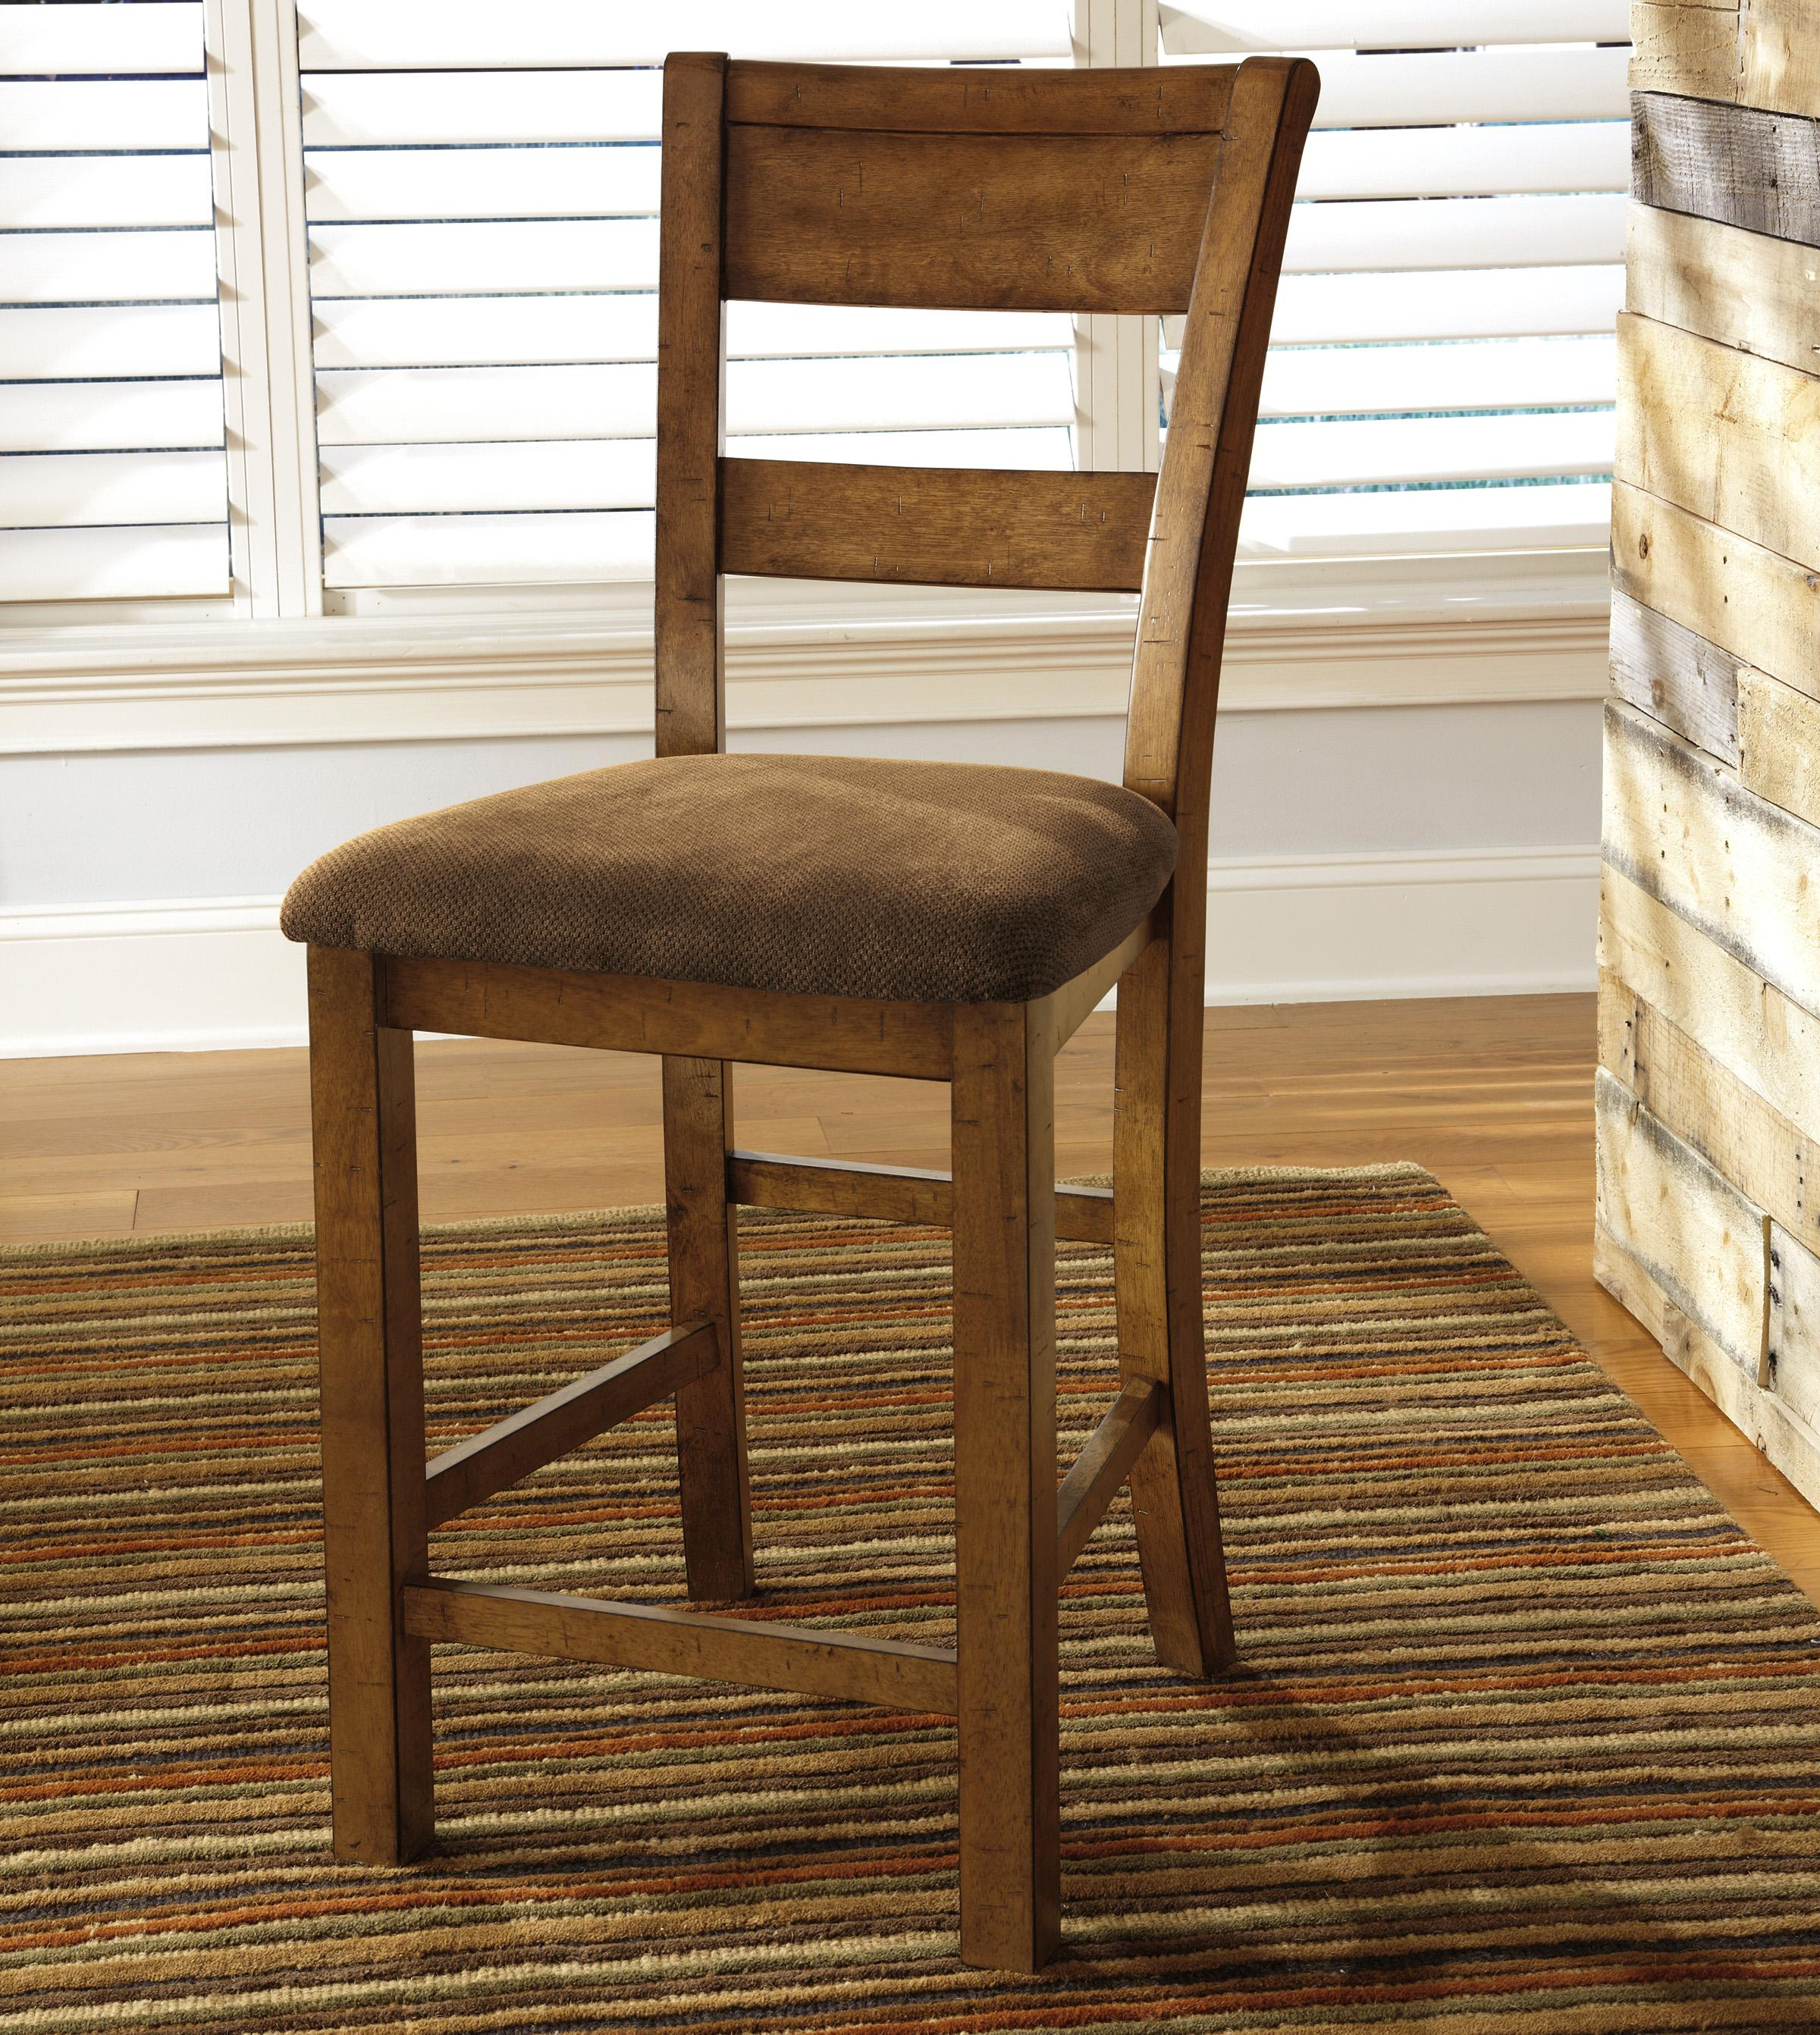 Signature Design by Ashley Krinden Upholstered Barstool - Item Number: D653-124